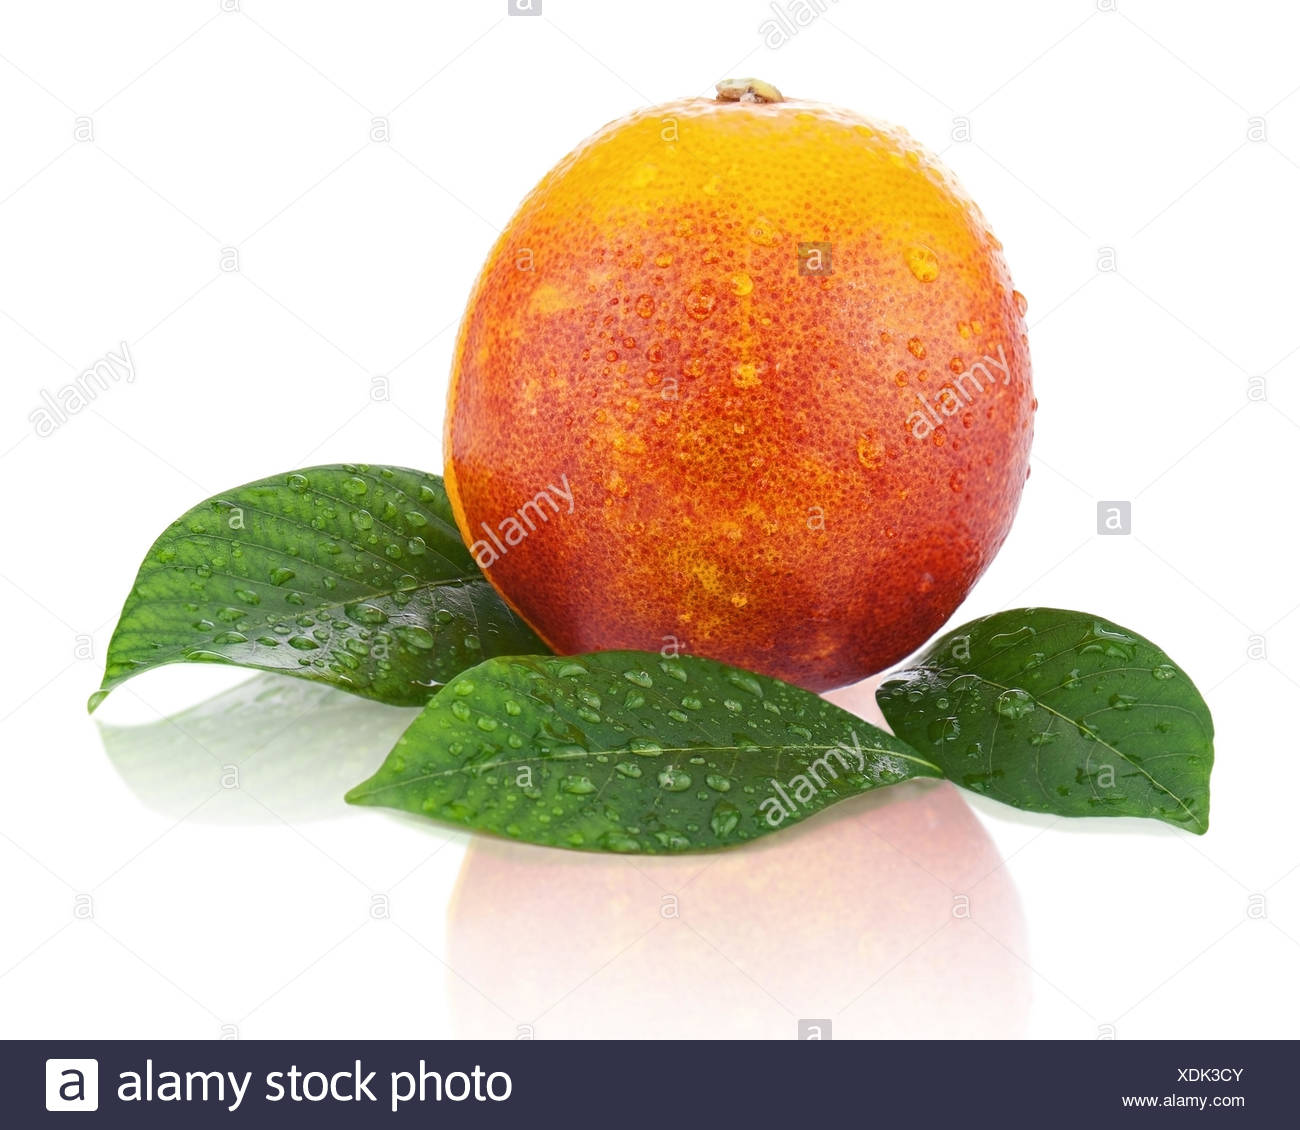 Ripe red blood oranges with green leaves isolated on white background. Closeup. - Stock Image